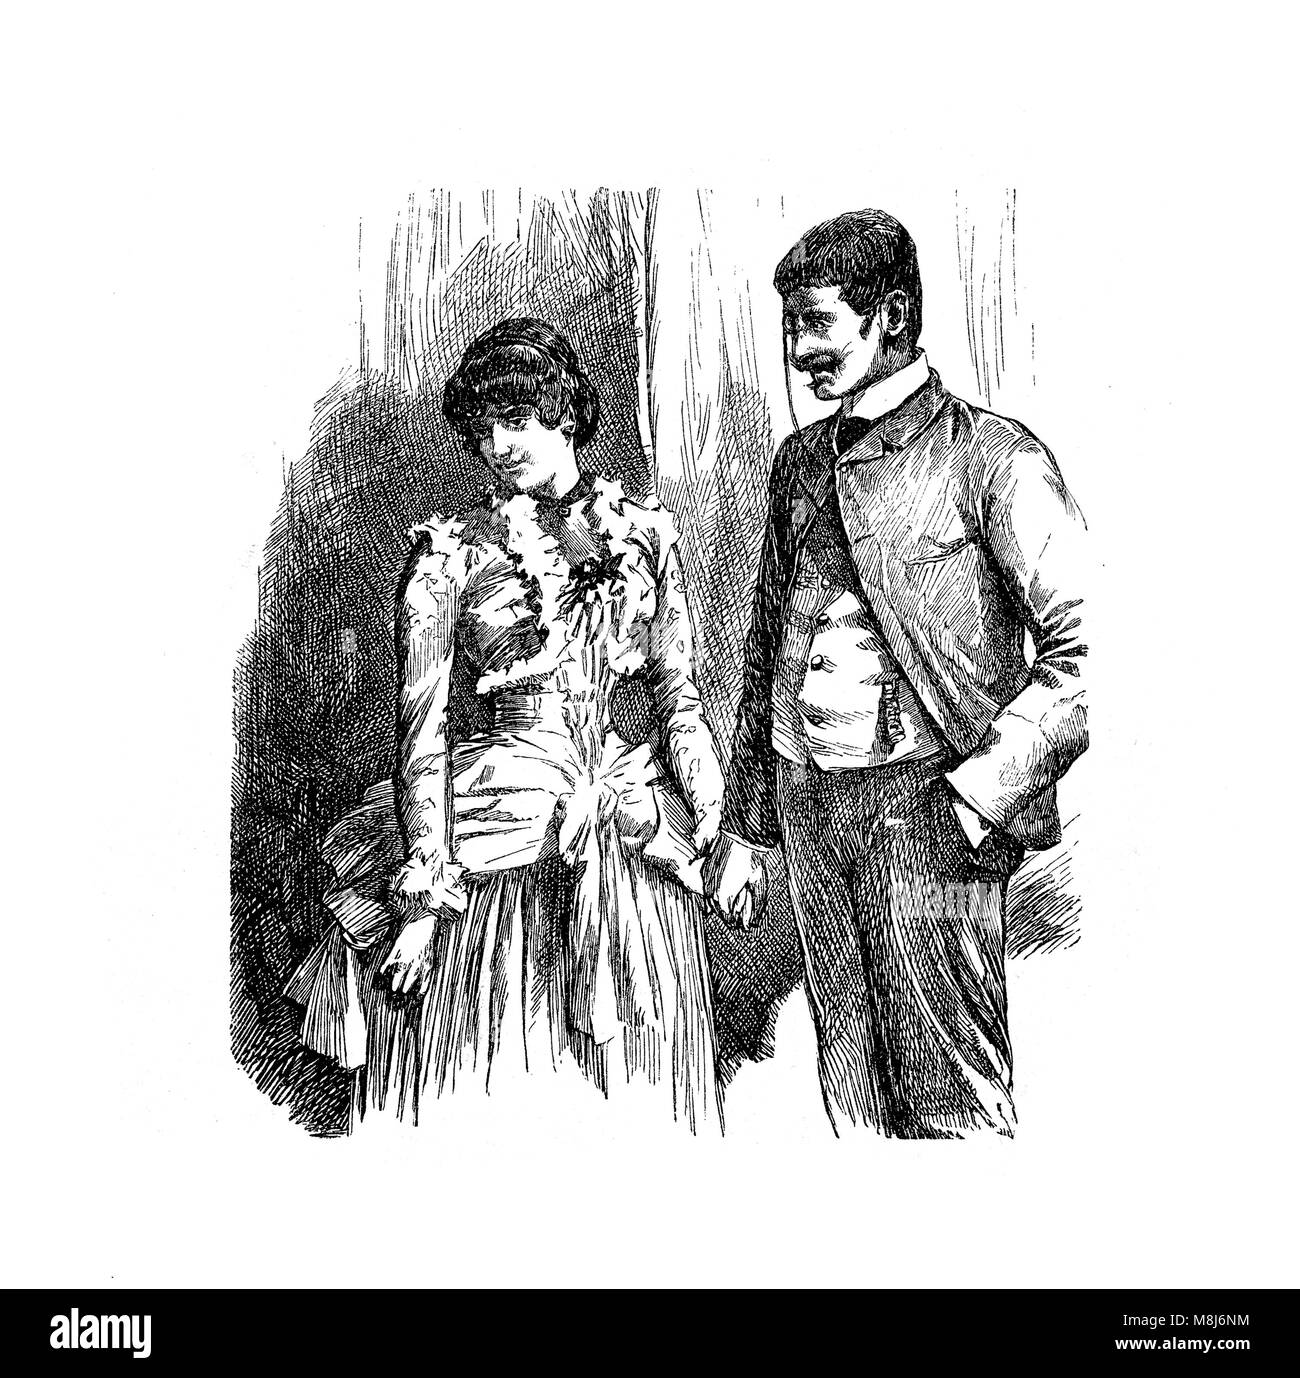 Gentleman courting a shy young woman holding hand, vintage engraving - Stock Image